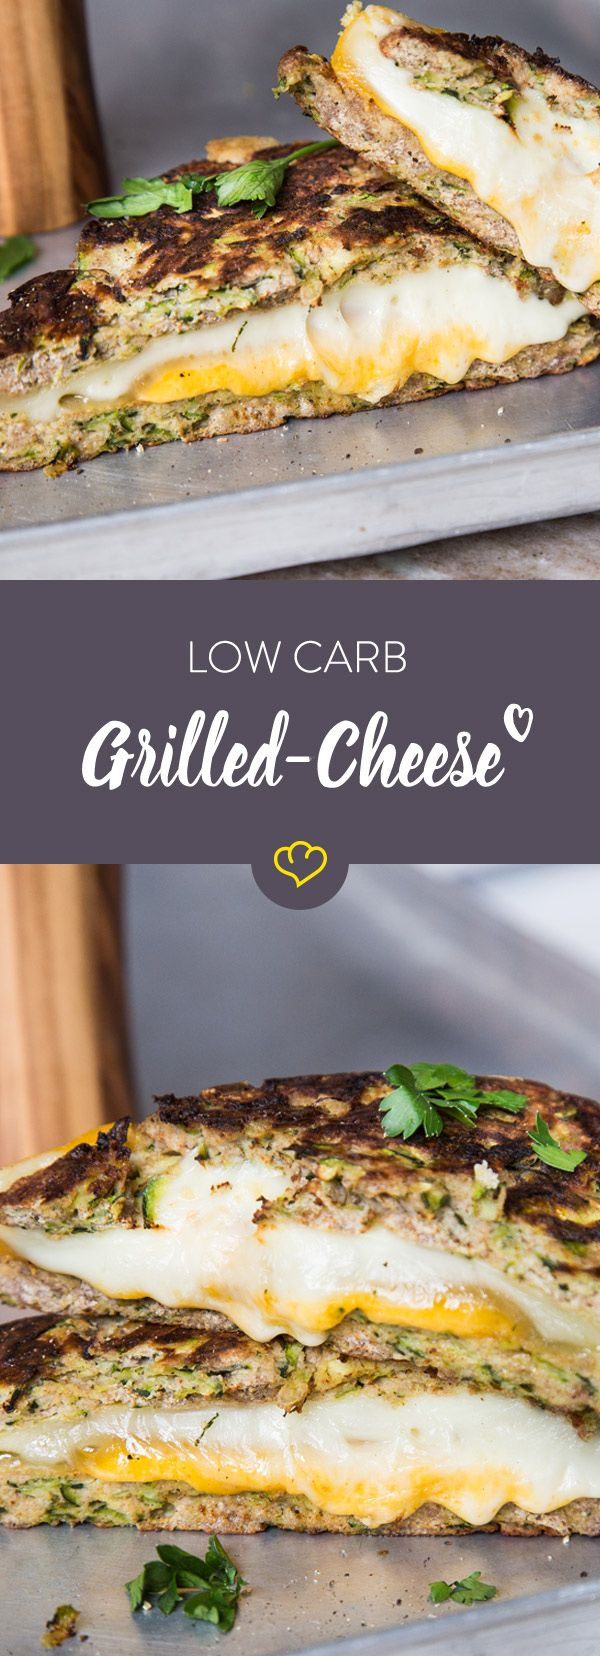 Low Carb Grilled Cheese Sandwich #lowcarbeating